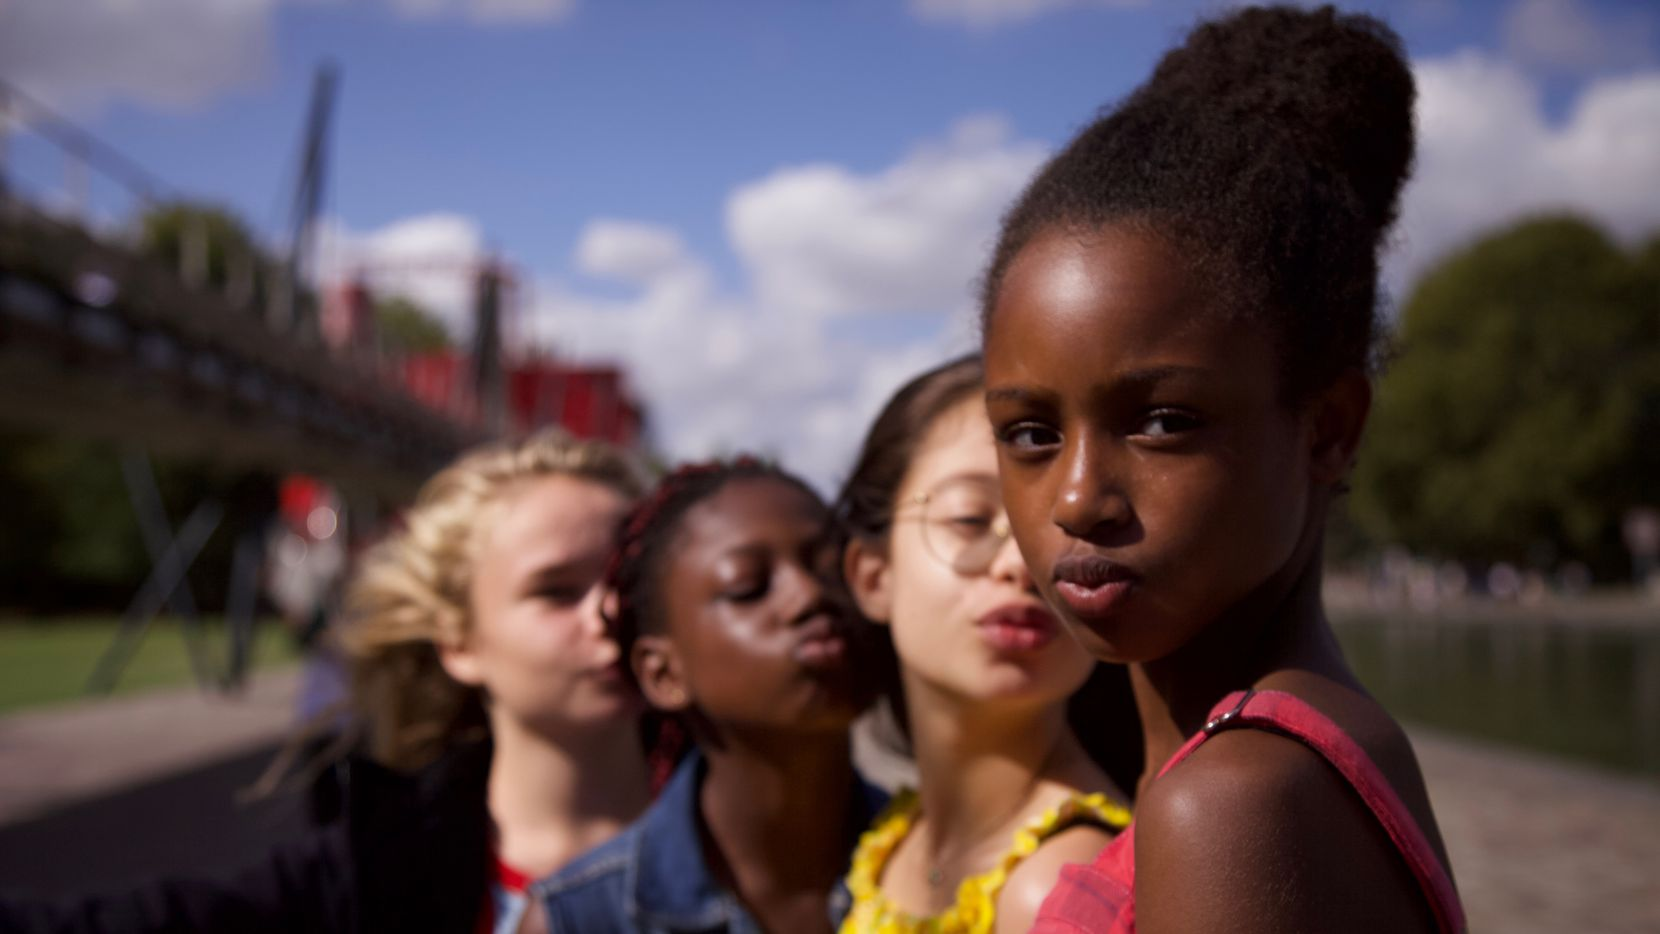 """Cuties"" centers on an 11-year-old Senegalese immigrant who joins a dance group. The film's writer and director Maïmouna Doucouré has said the film is a critique of the hypersexualization of young girls."